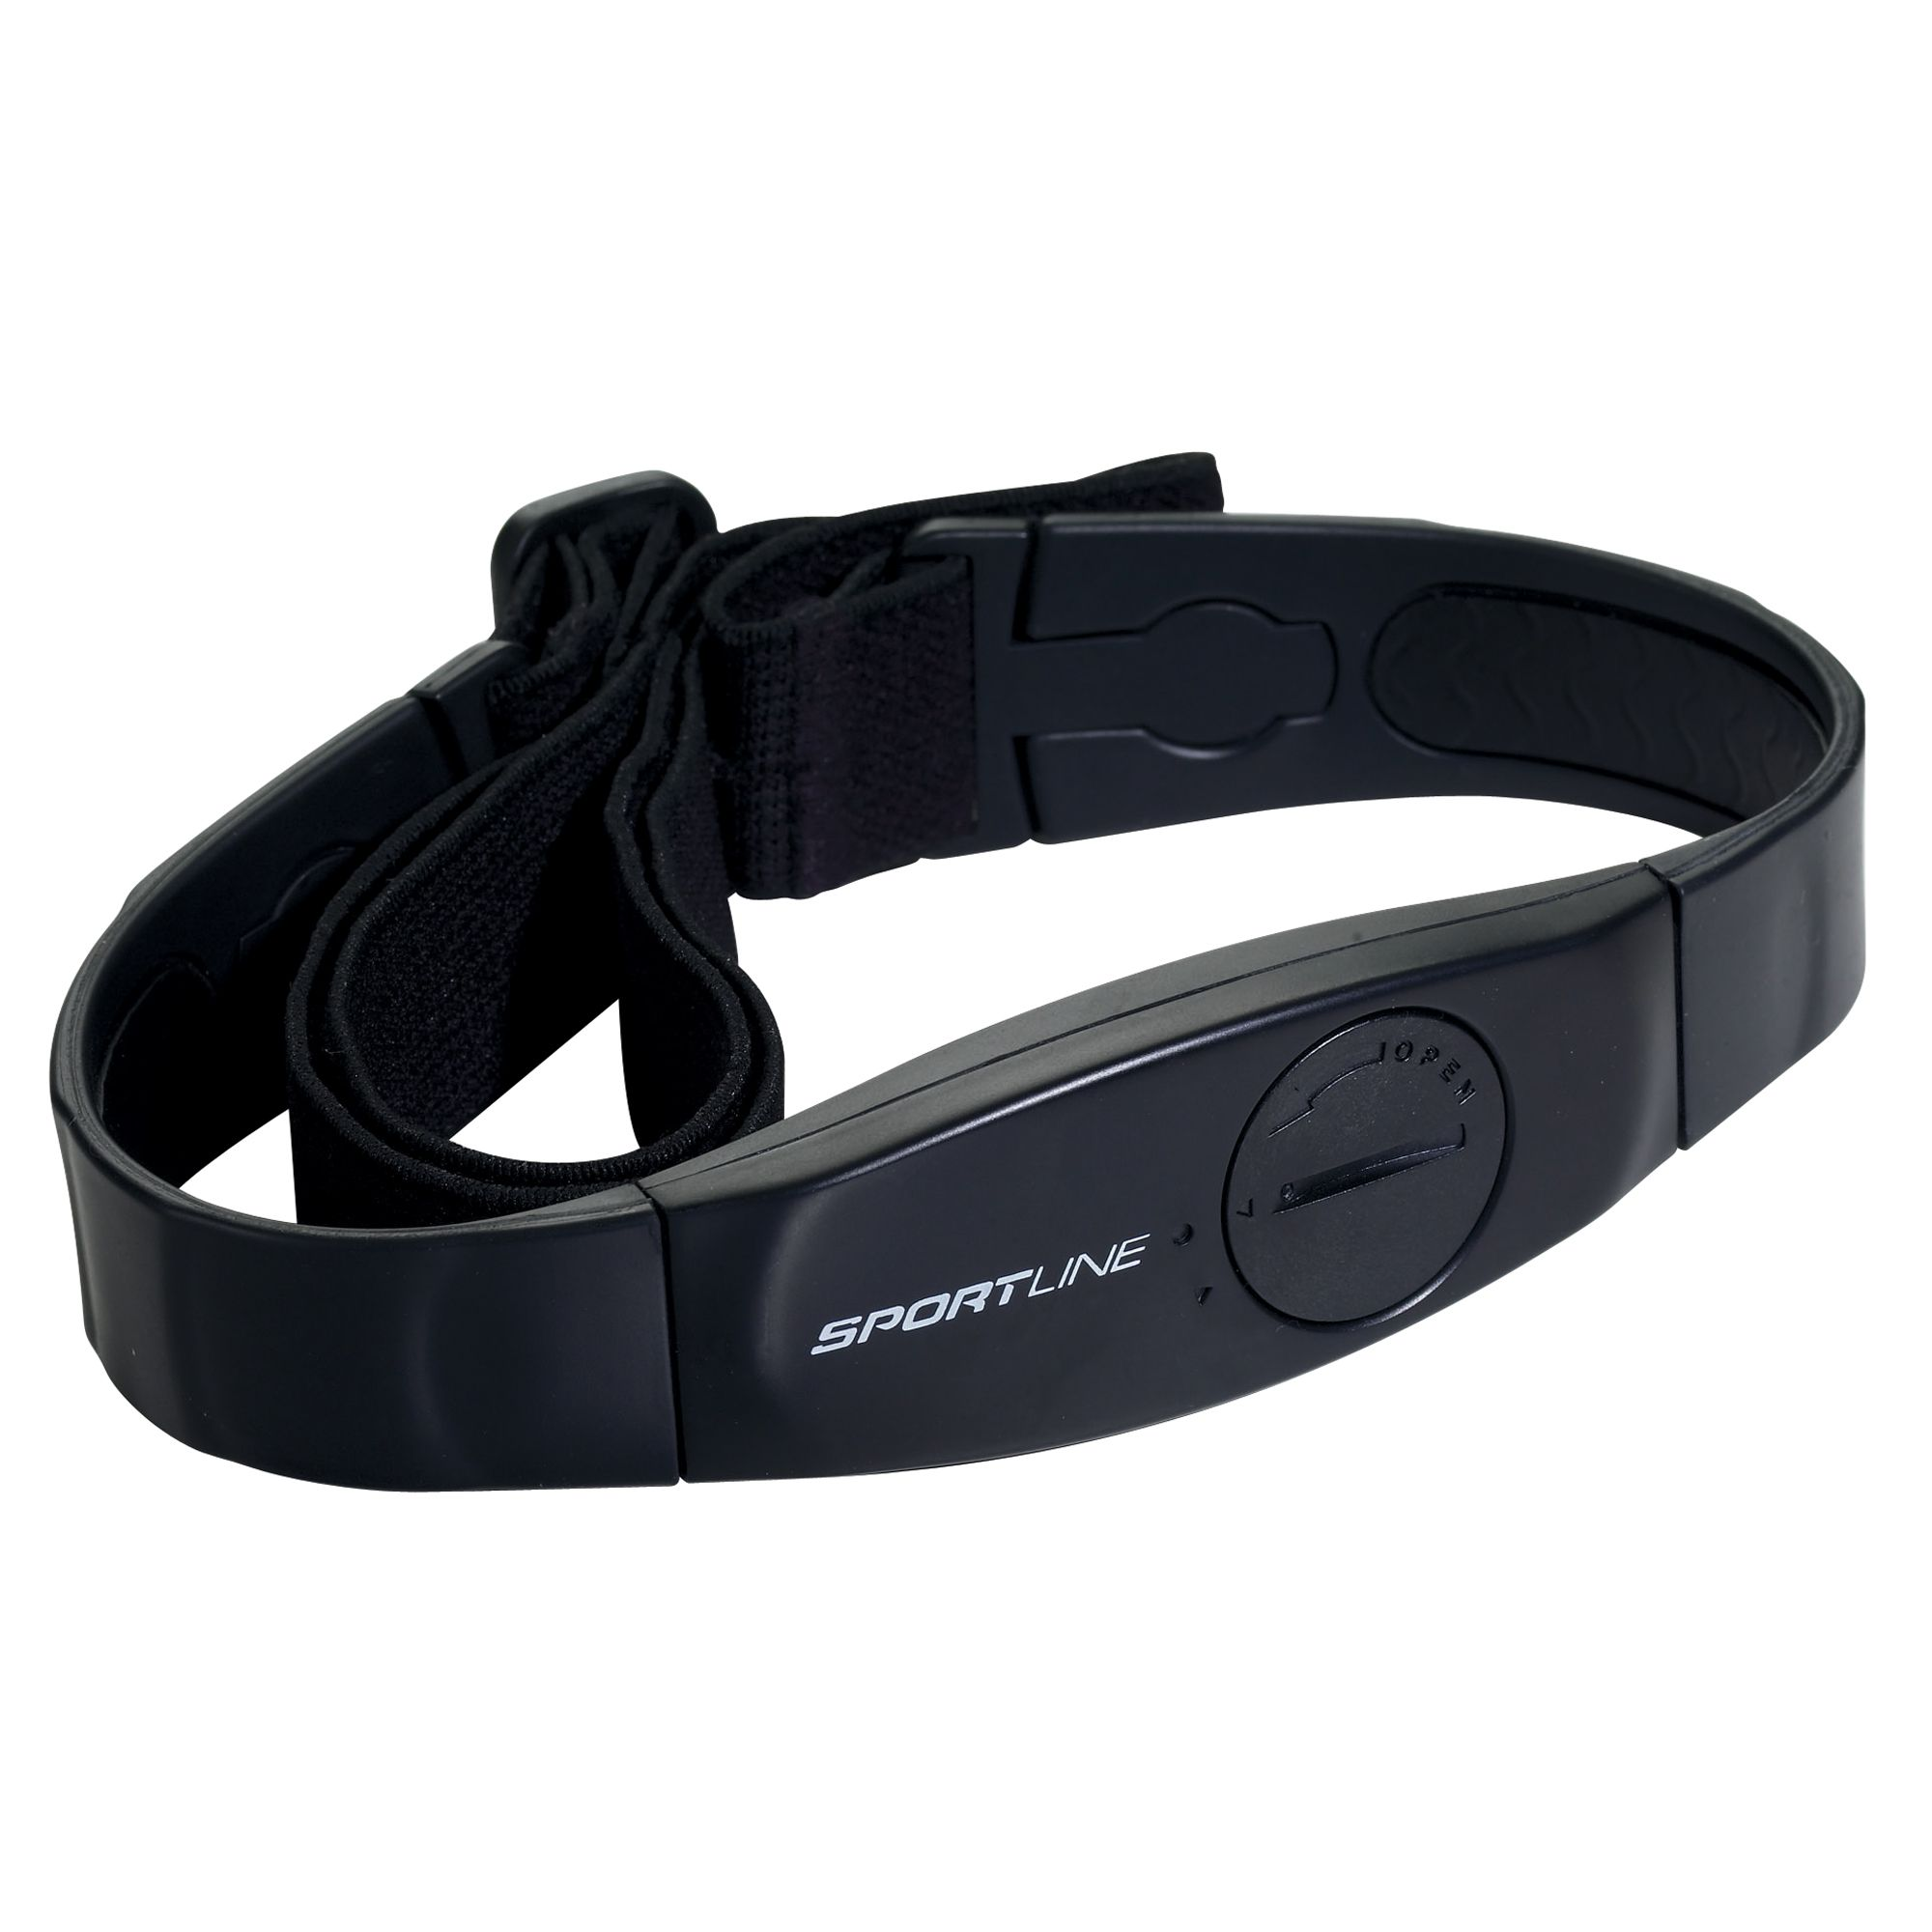 Sportline 1010 Duo Heart Rate Monitor